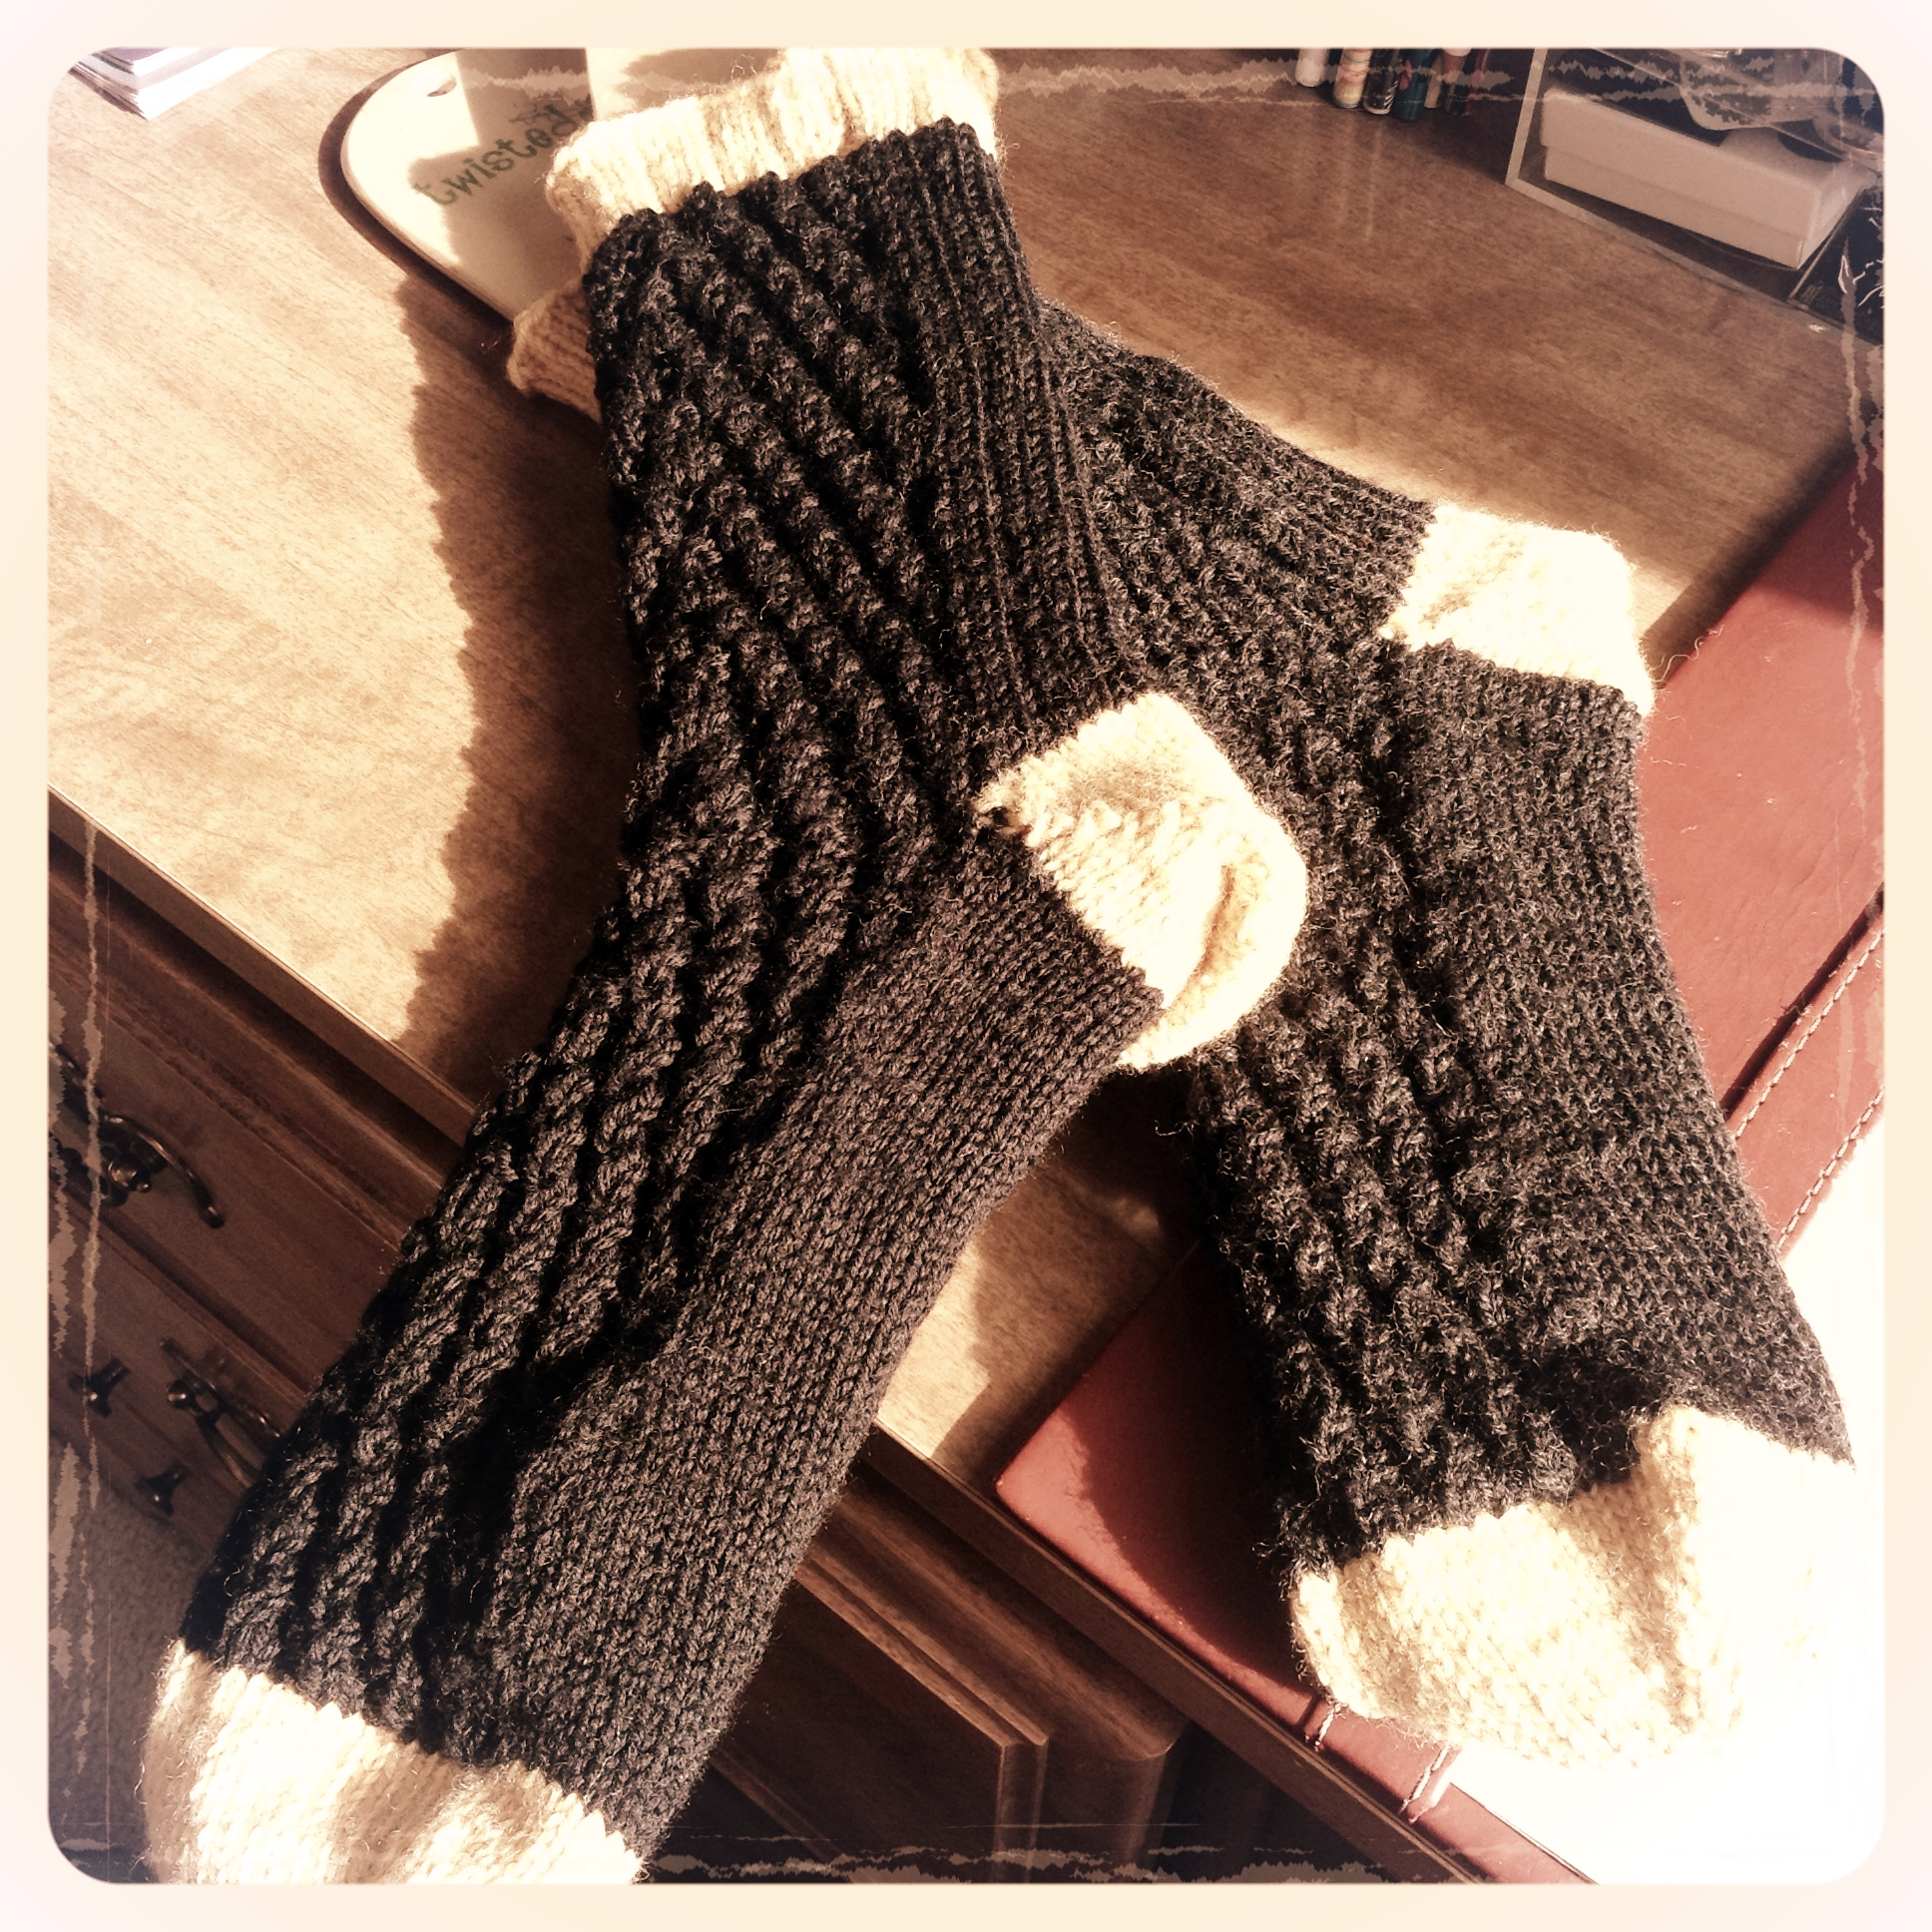 Knitted socks with texture